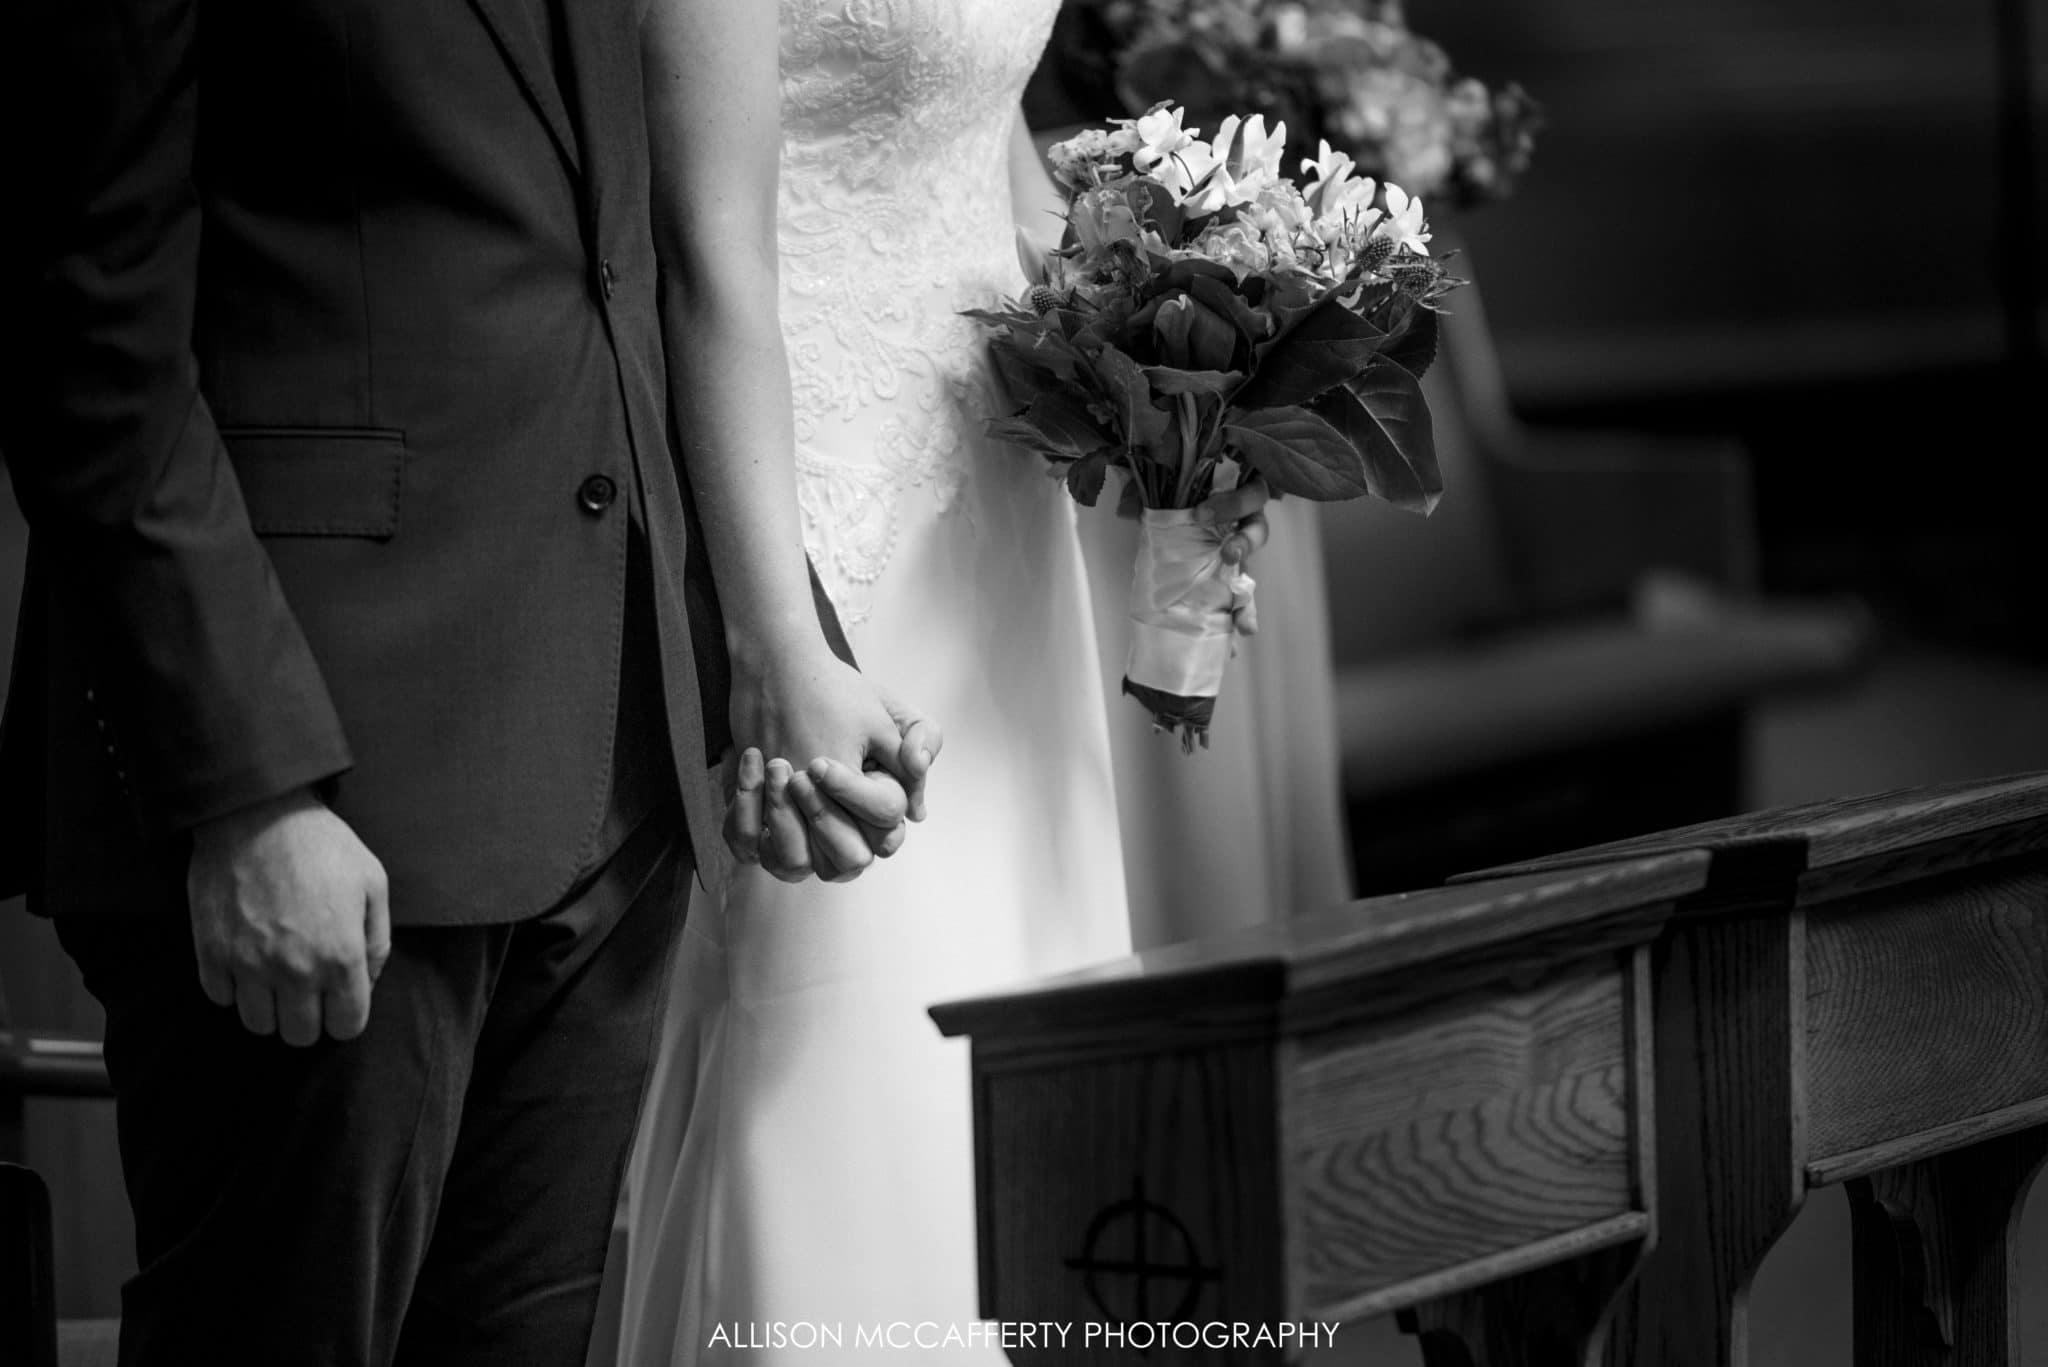 Black and white photo of bride and groom holding hands in church